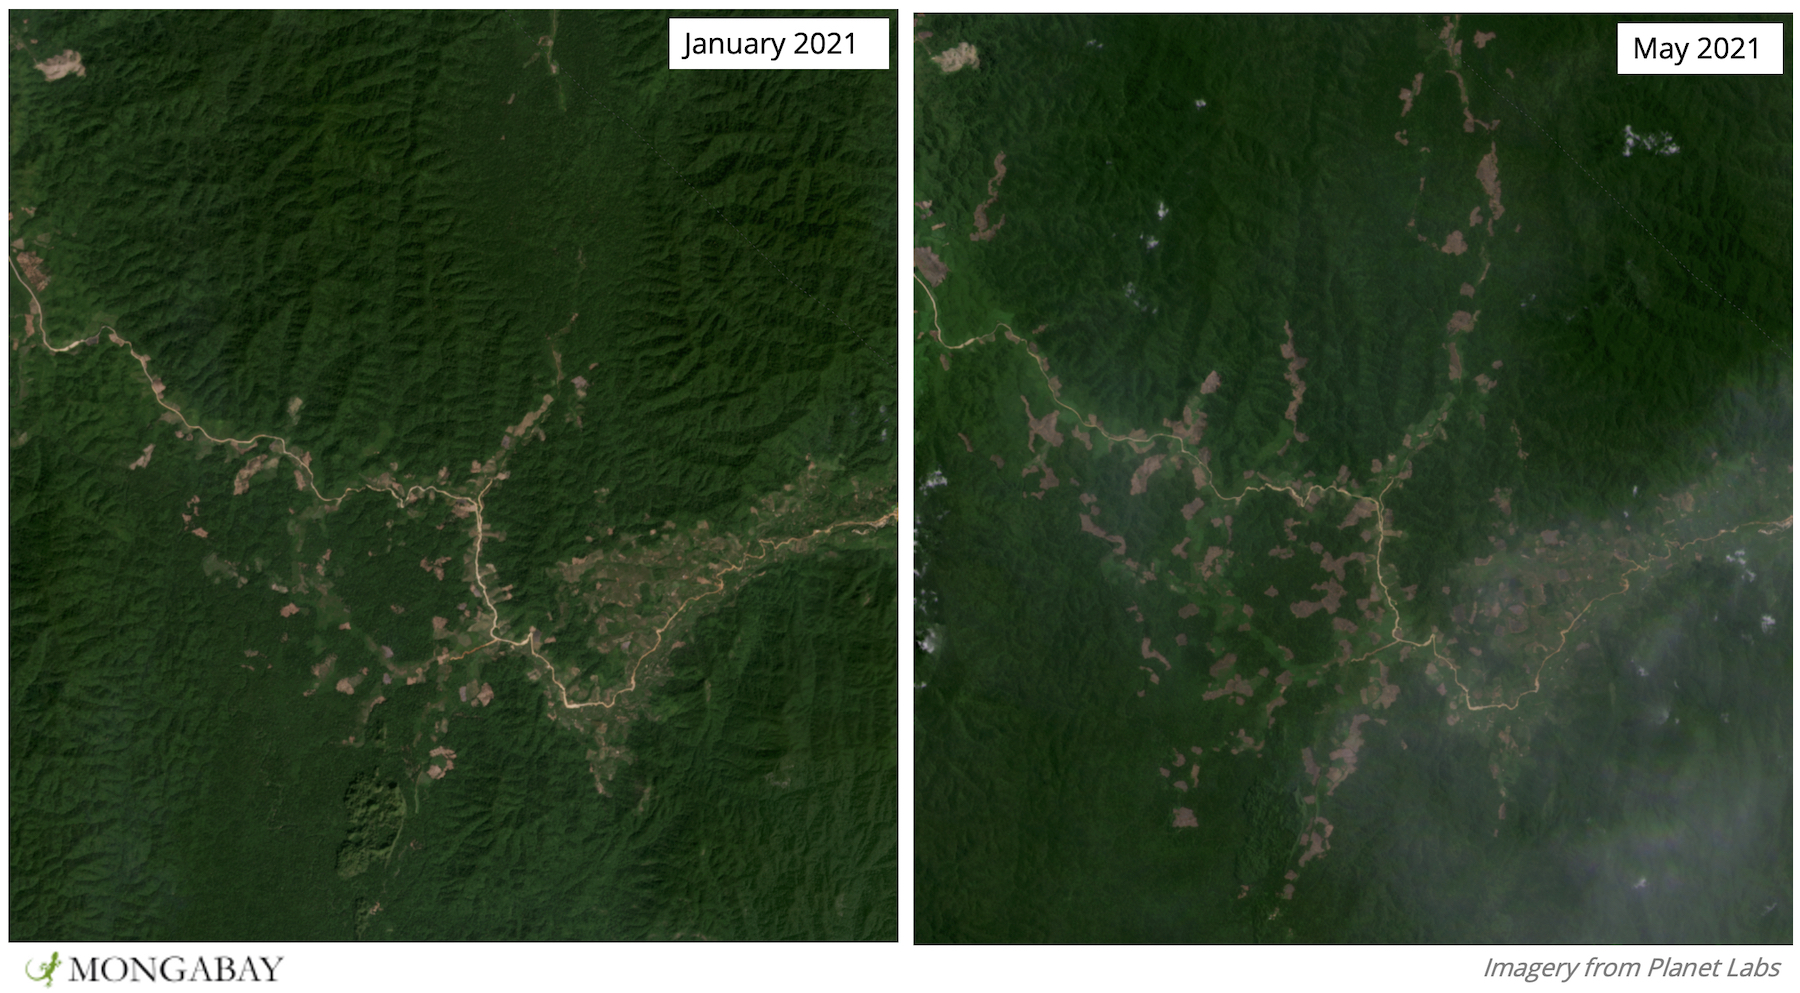 Satellite imagery shows the proliferation of clearings along a road. This area is inhabited by endangered pittas and geckoes.